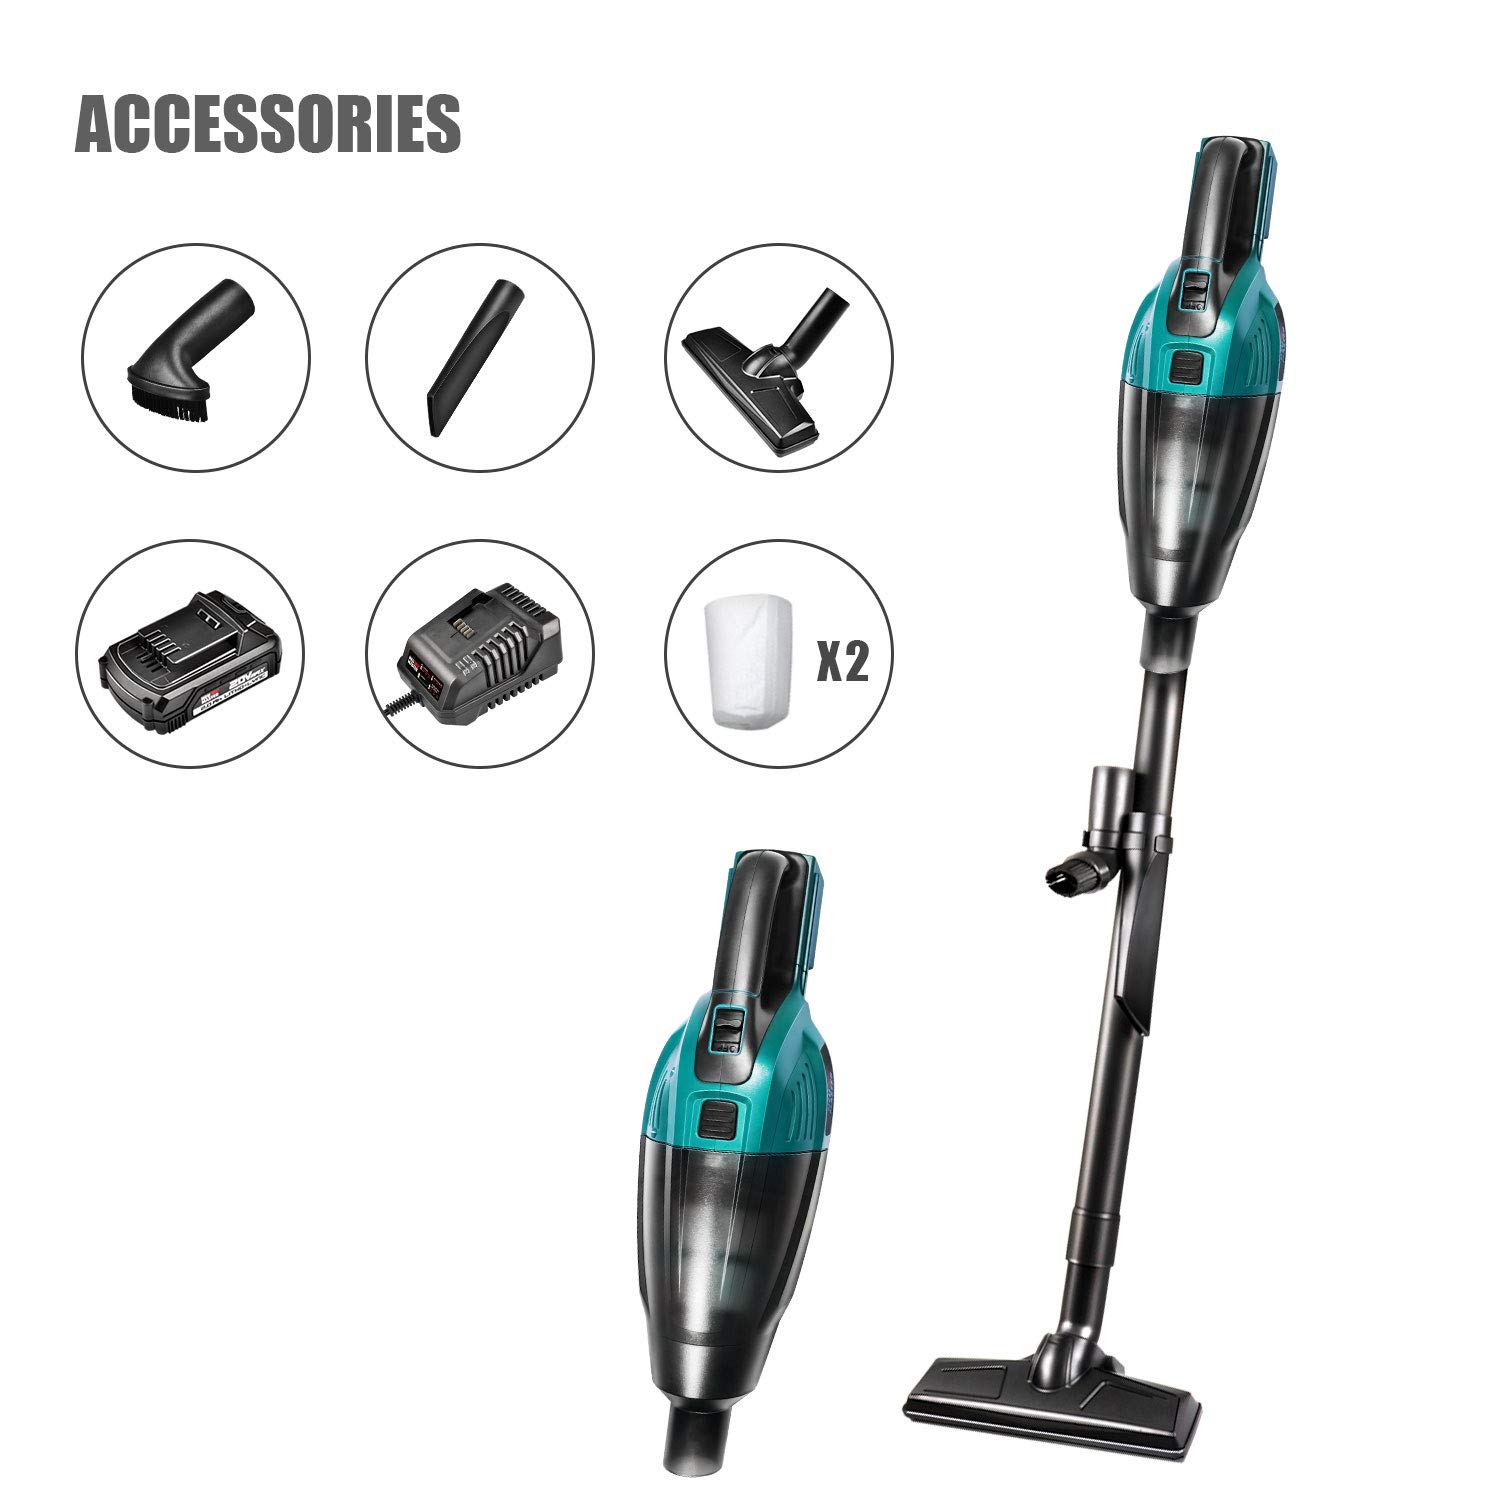 Cordless Vacuum Cleaner, NEU MASTER Lightweight Stick Vacuum Cleaner with Rechargeable Lithium Ion Battery & 2 Detachable Filter NVC0035